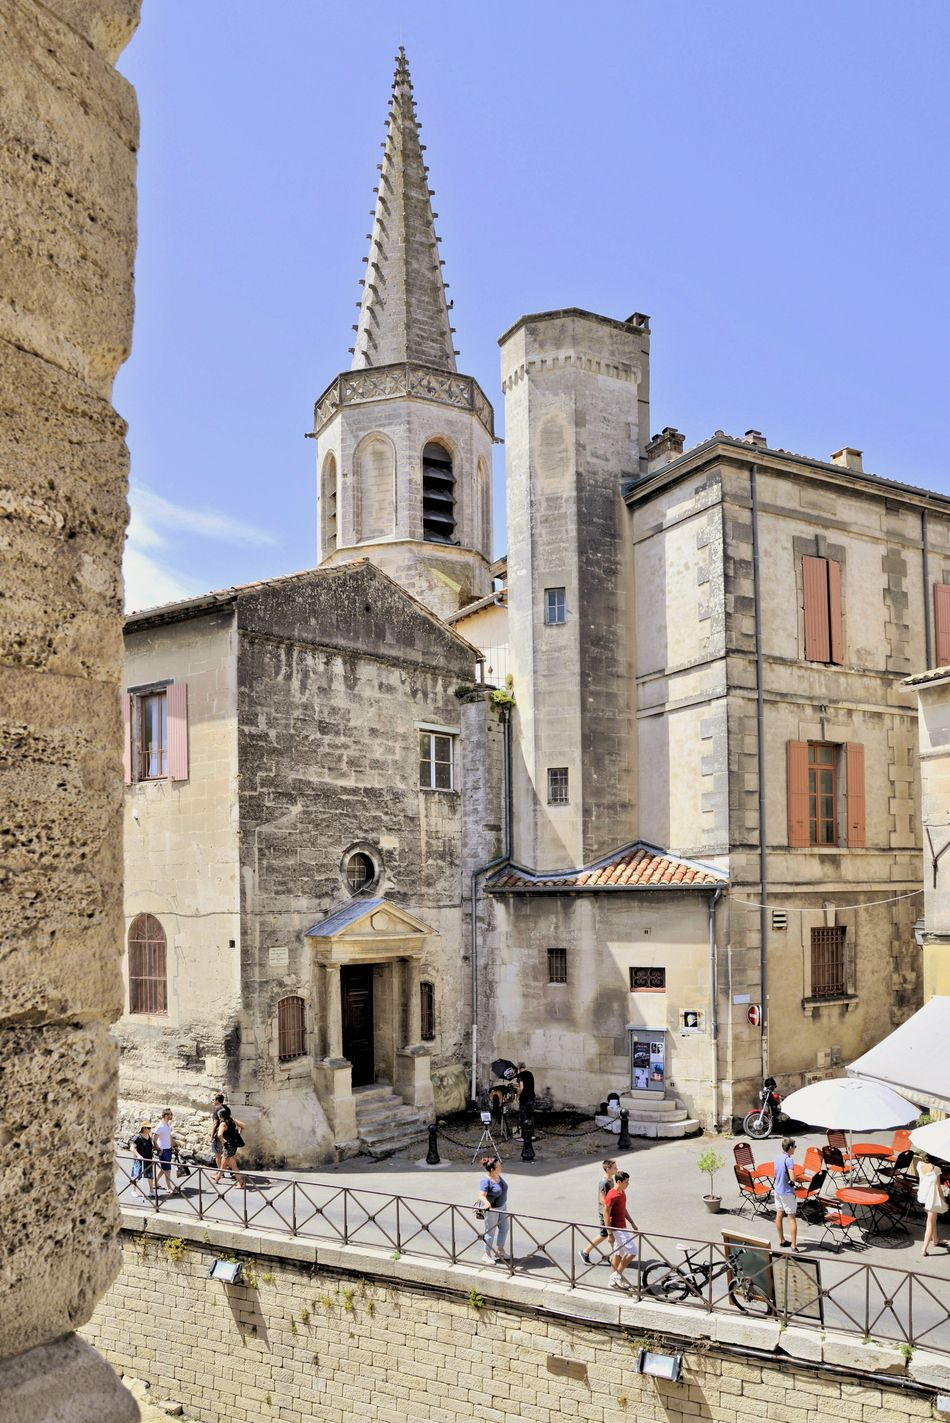 France 🇫🇷 Arles Provence Architecture Relaxing Everyday Joy Enjoying Life Holidays ☀ Hanging Out Summer Feelings